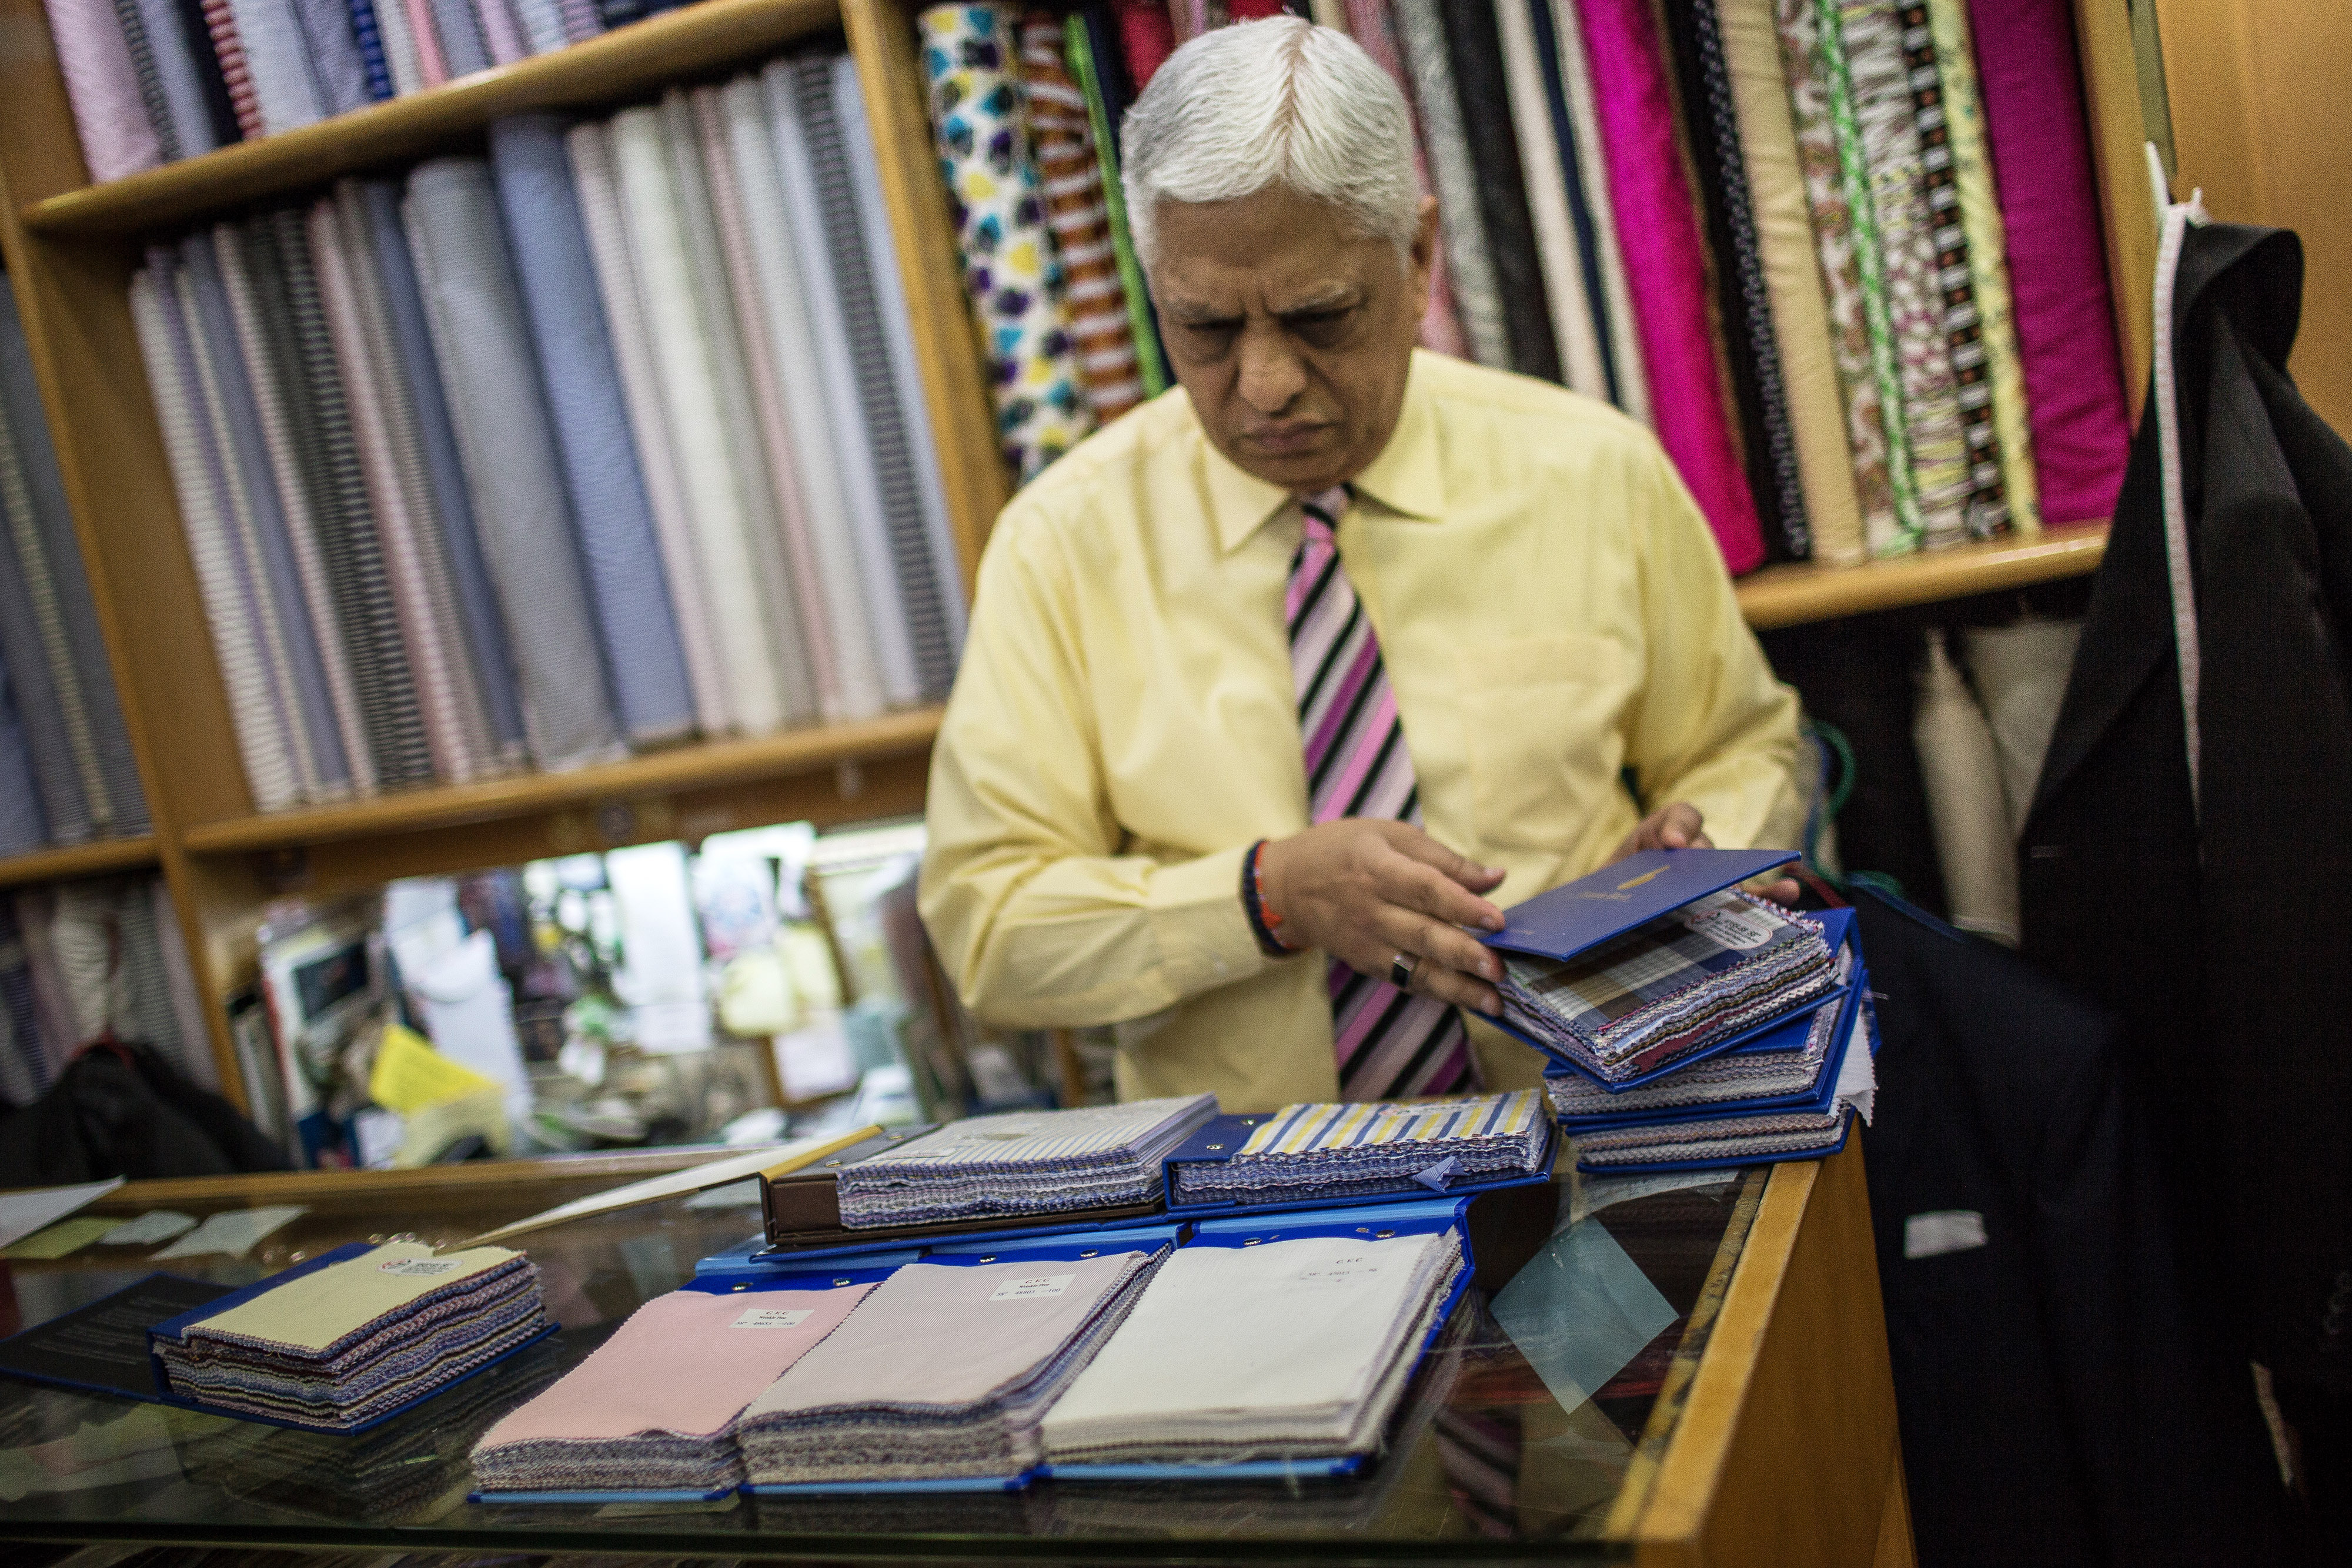 Manu Melwani, co-owner of Sam's Tailor, arranges fabric samples at the company's store in the Tsim Sha Tsui district of Hong Kong on April 15, 2015